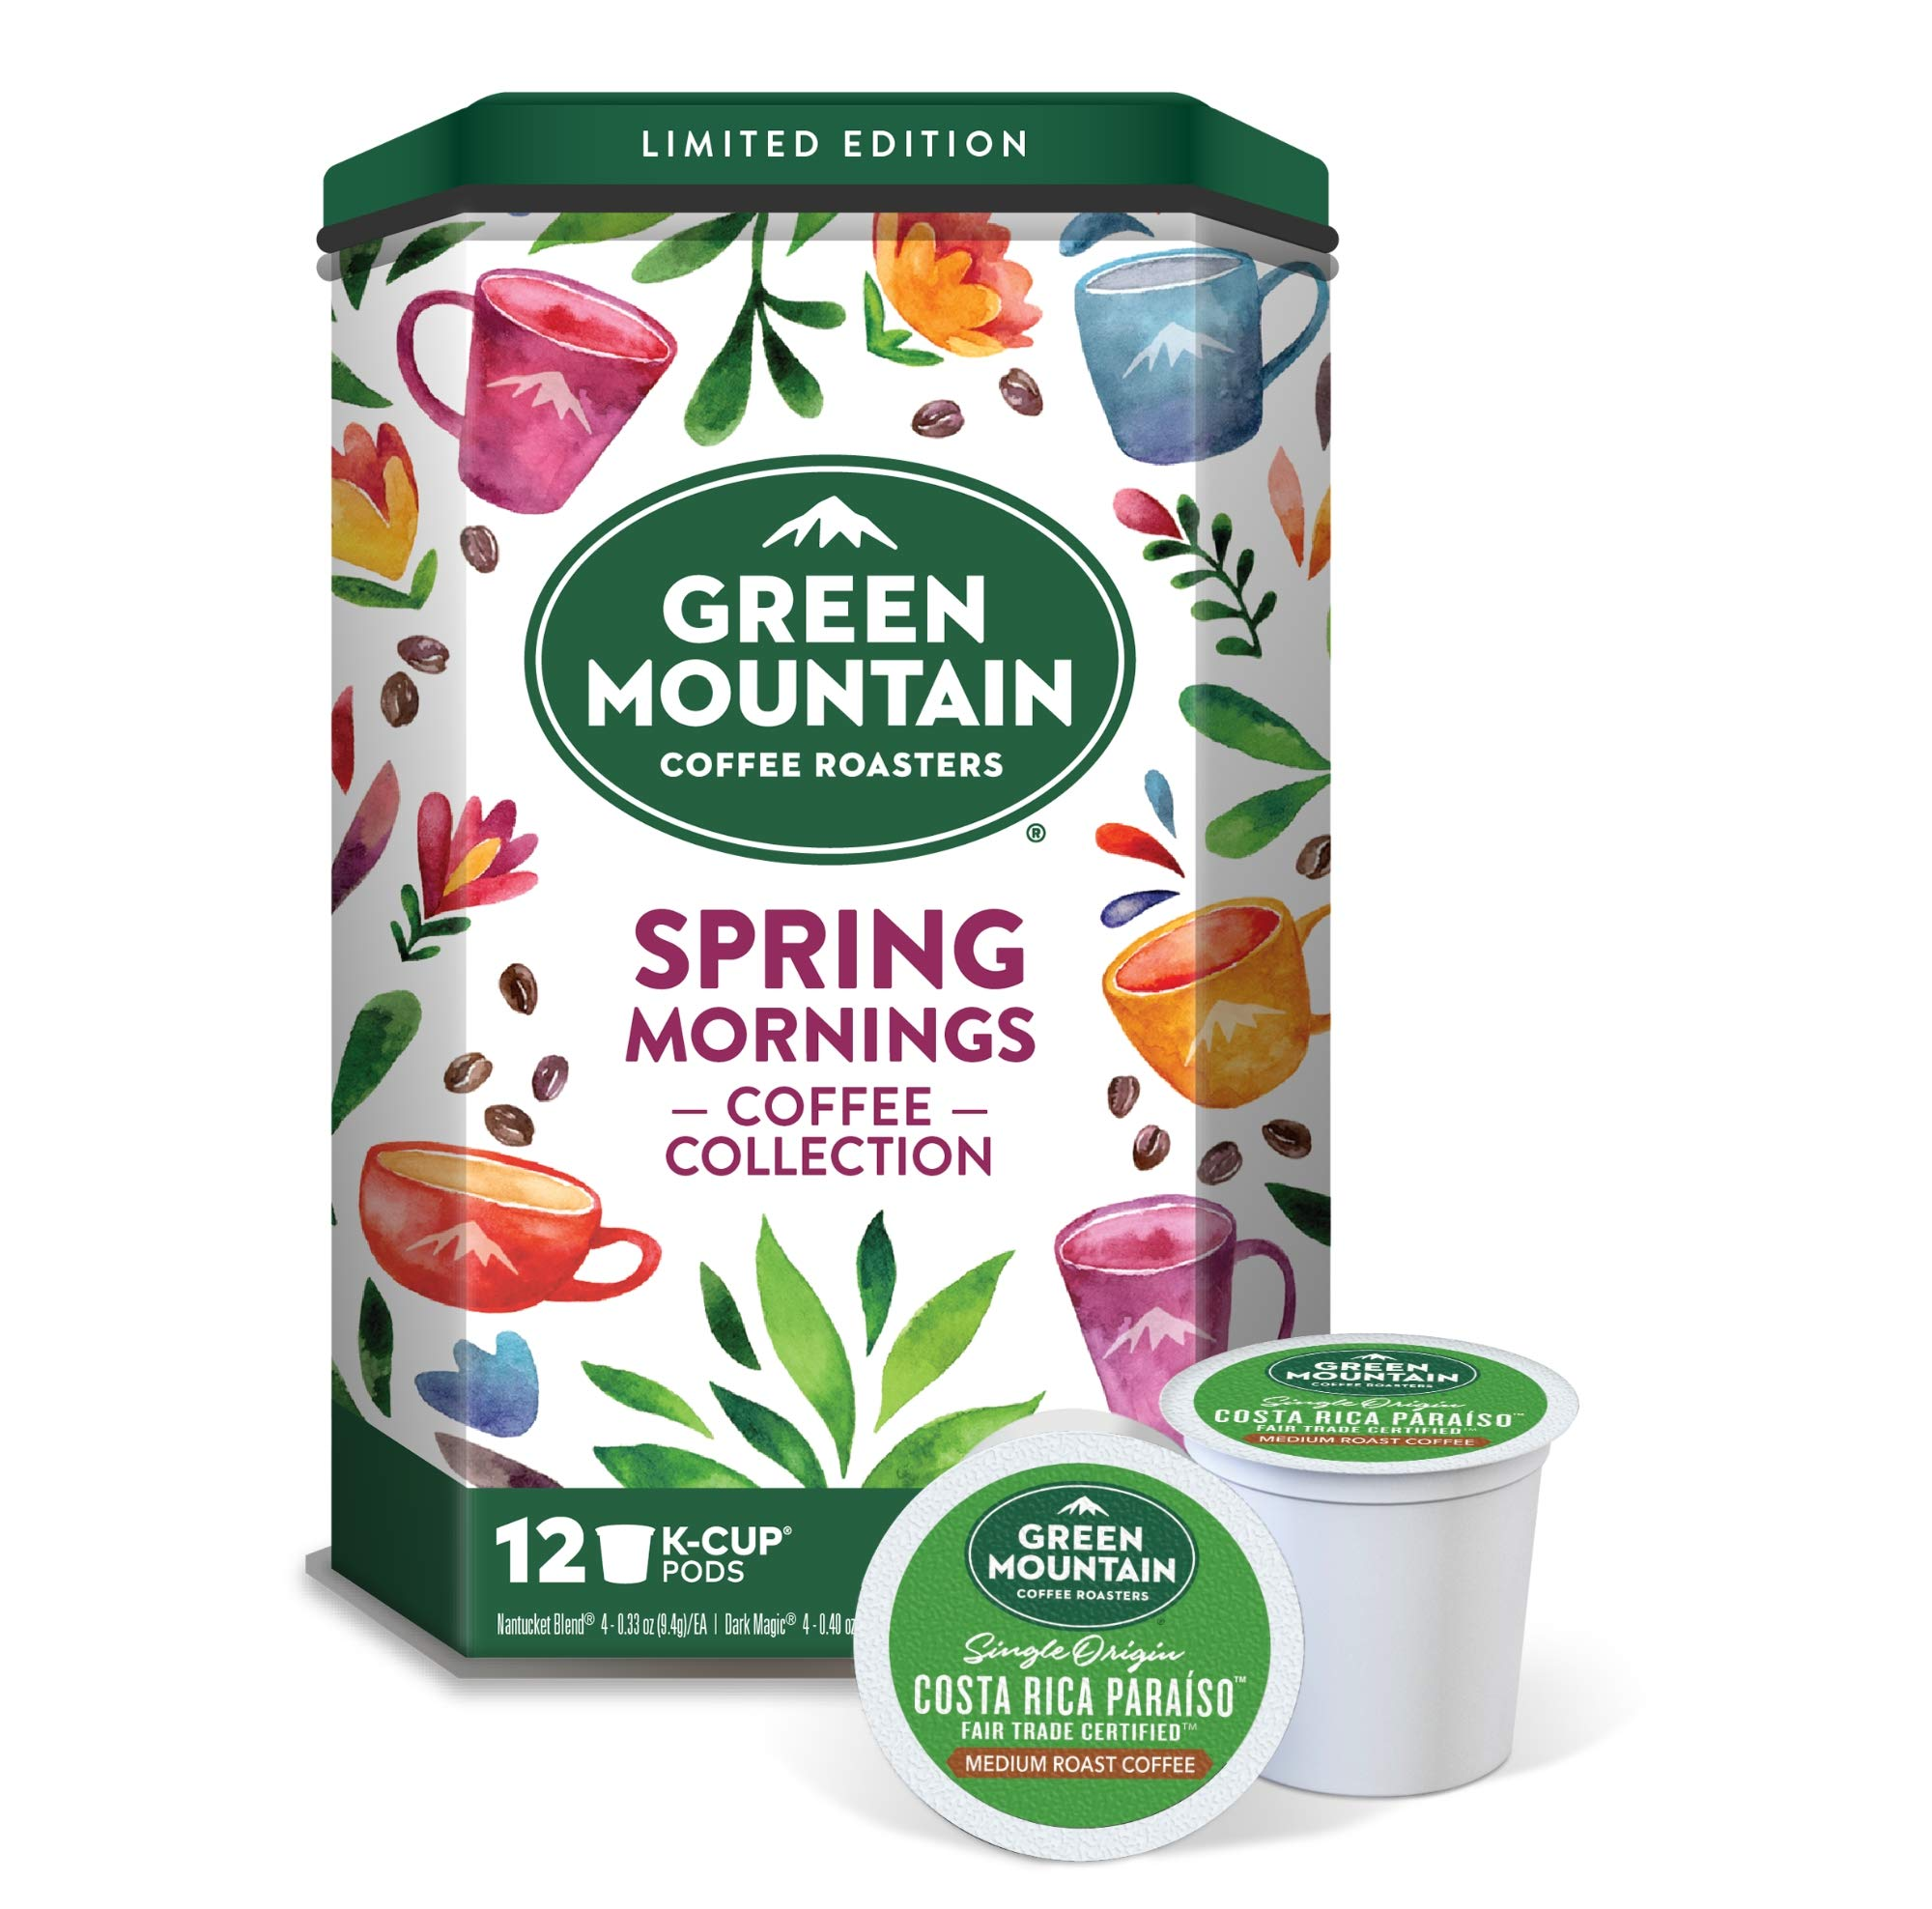 Green Mountain Coffee Roasters Spring Mornings Coffee Collectible Tin, Single Serve Keurig K-Cup Pods, Variety Pack Gift Set, 12 Count